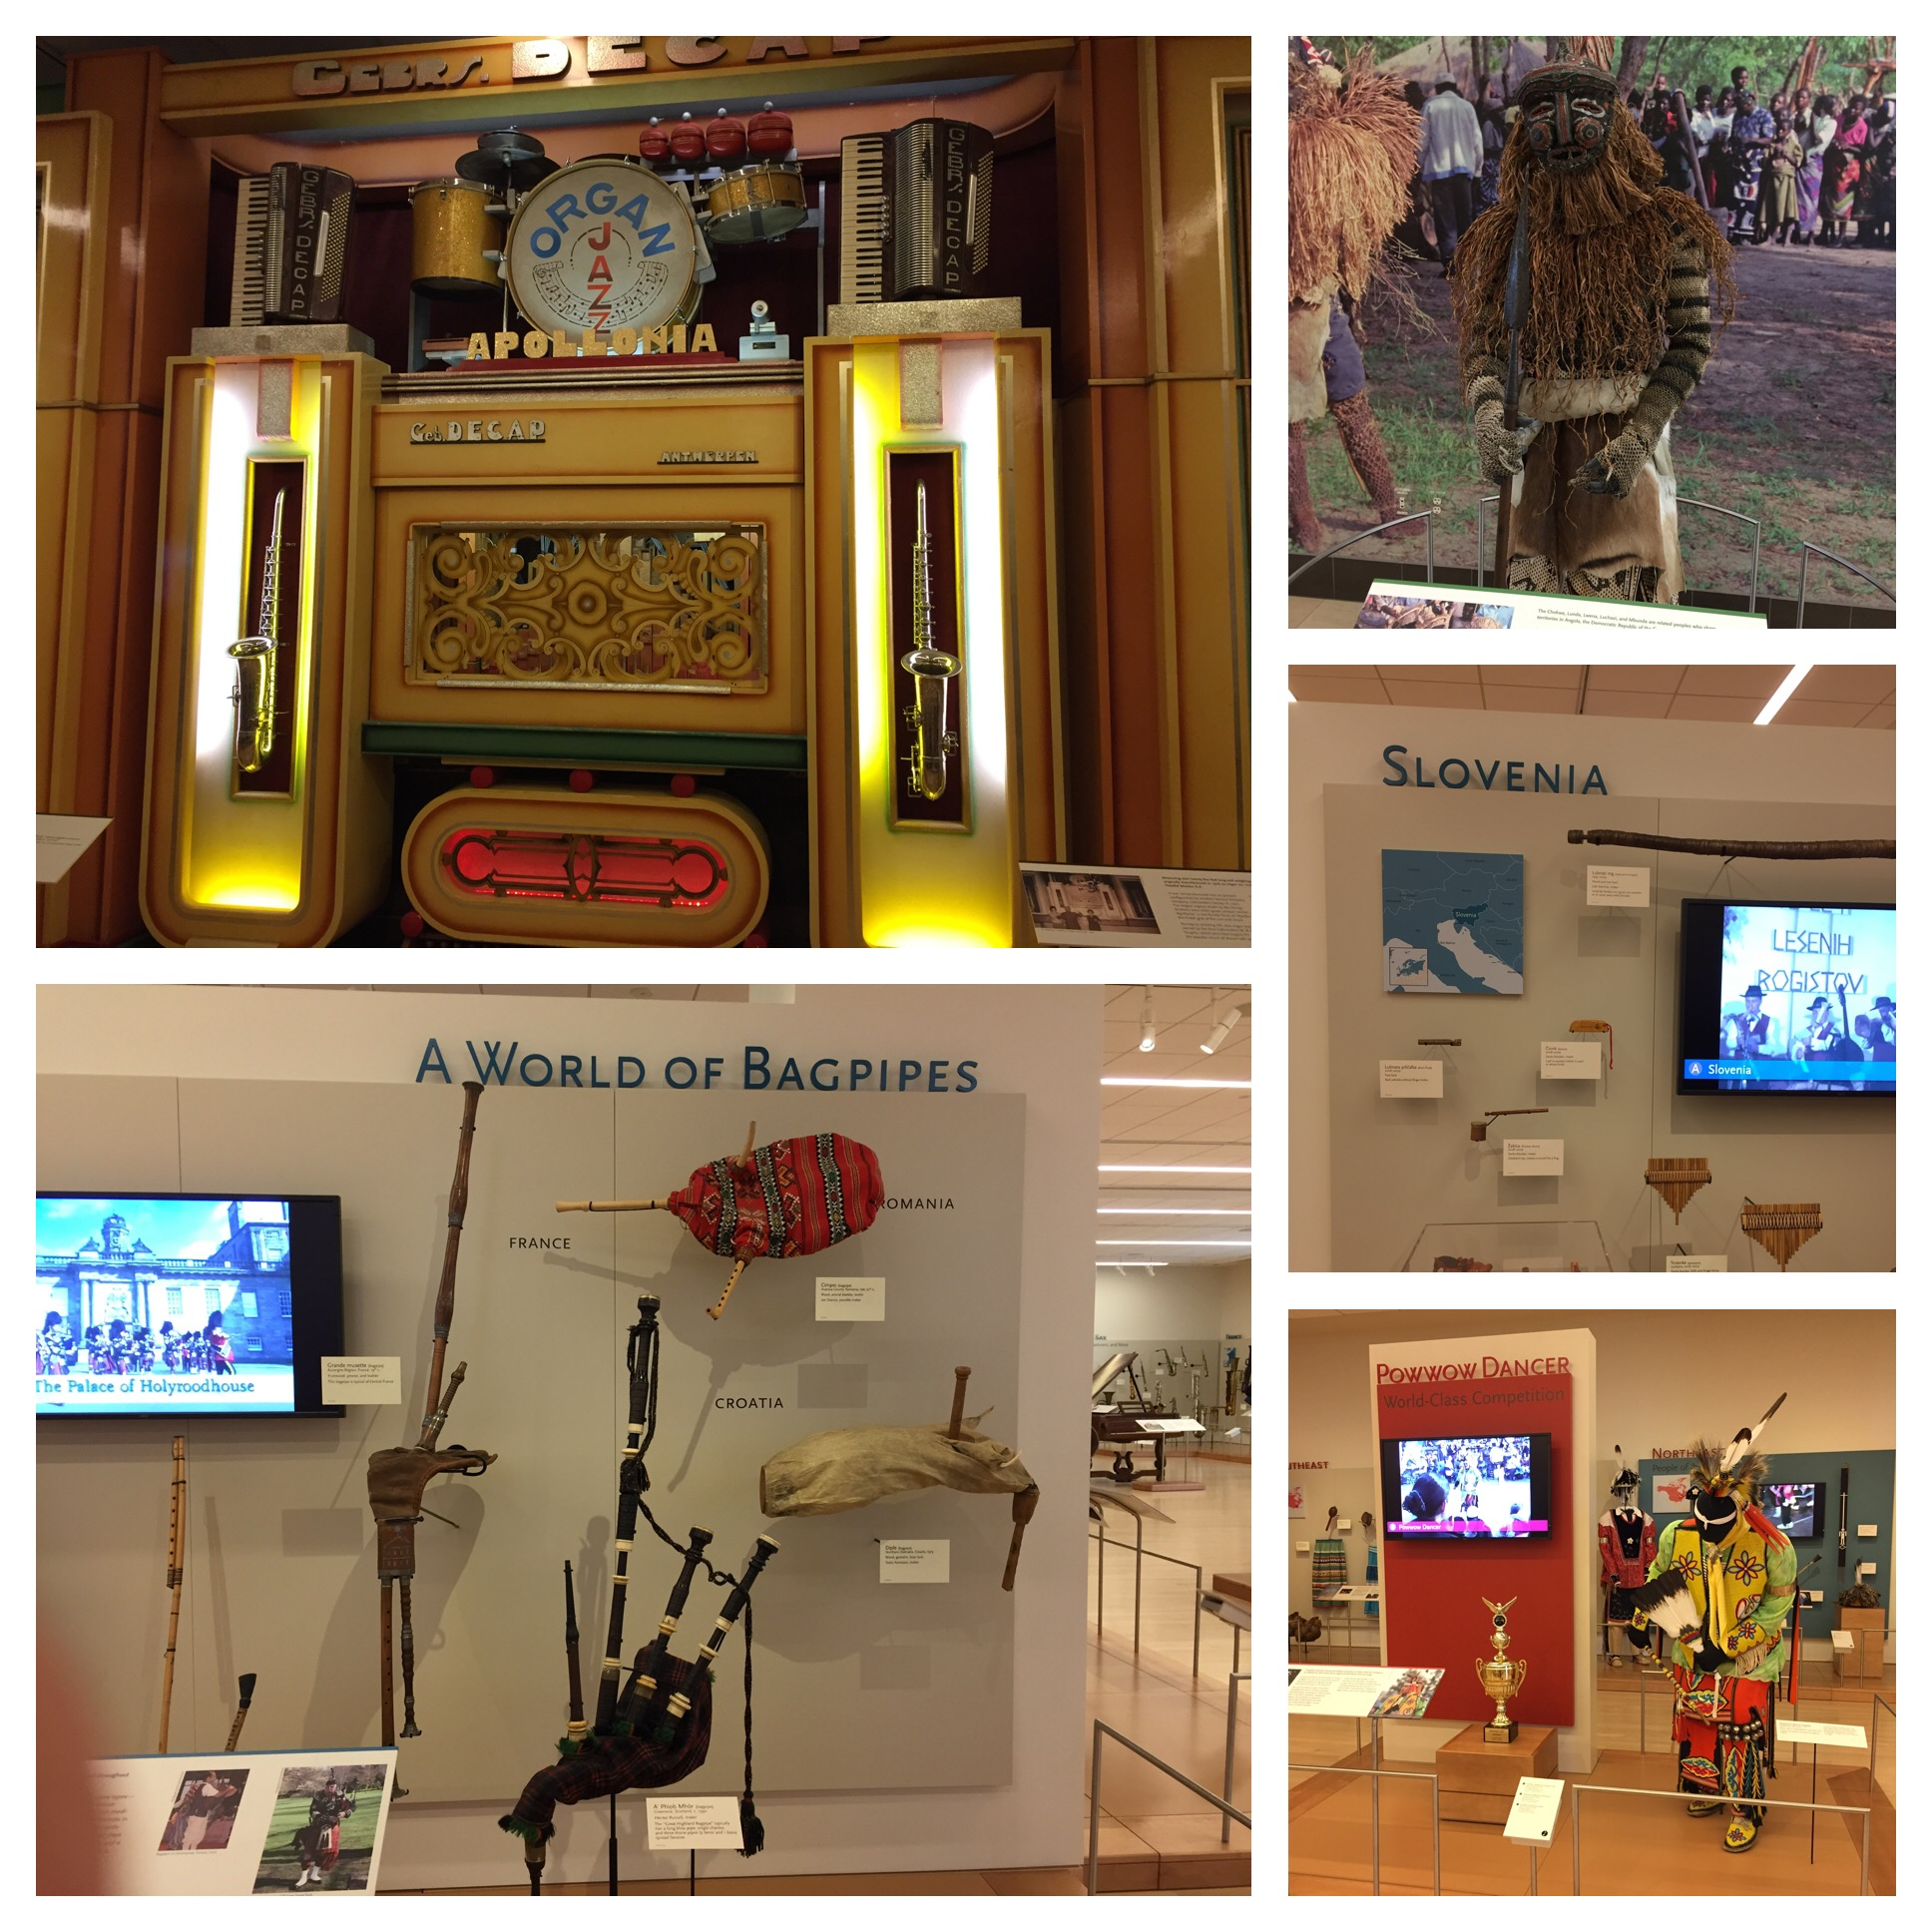 They have displays from just about every country around the world. So interesting!